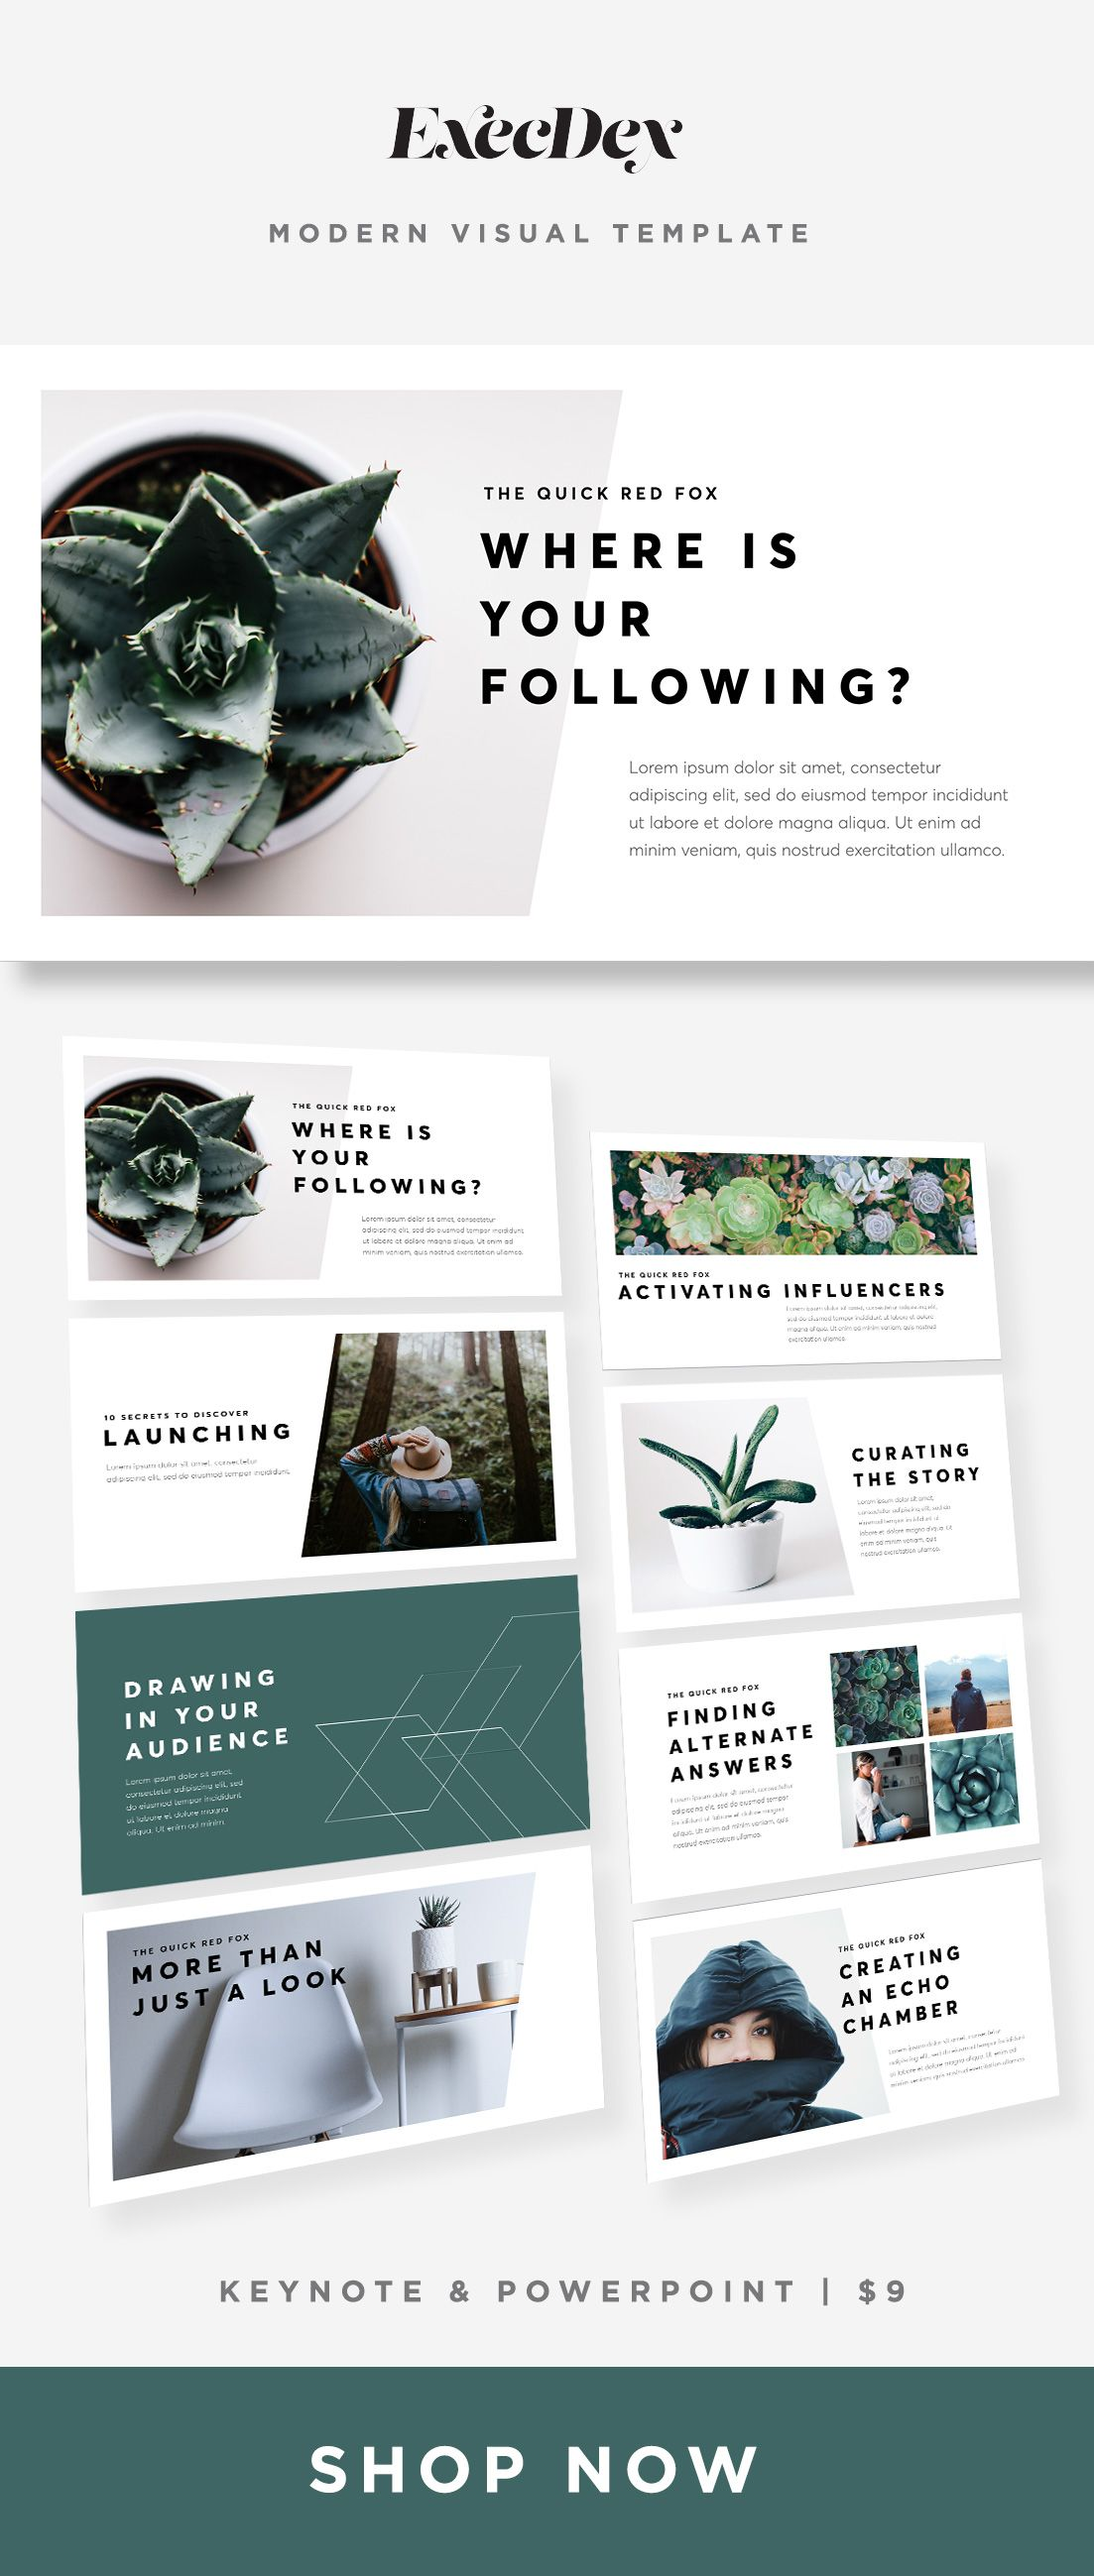 Modern Template Design Keynote Powerpoint Postcard Design Magazine Layout Design Template Design